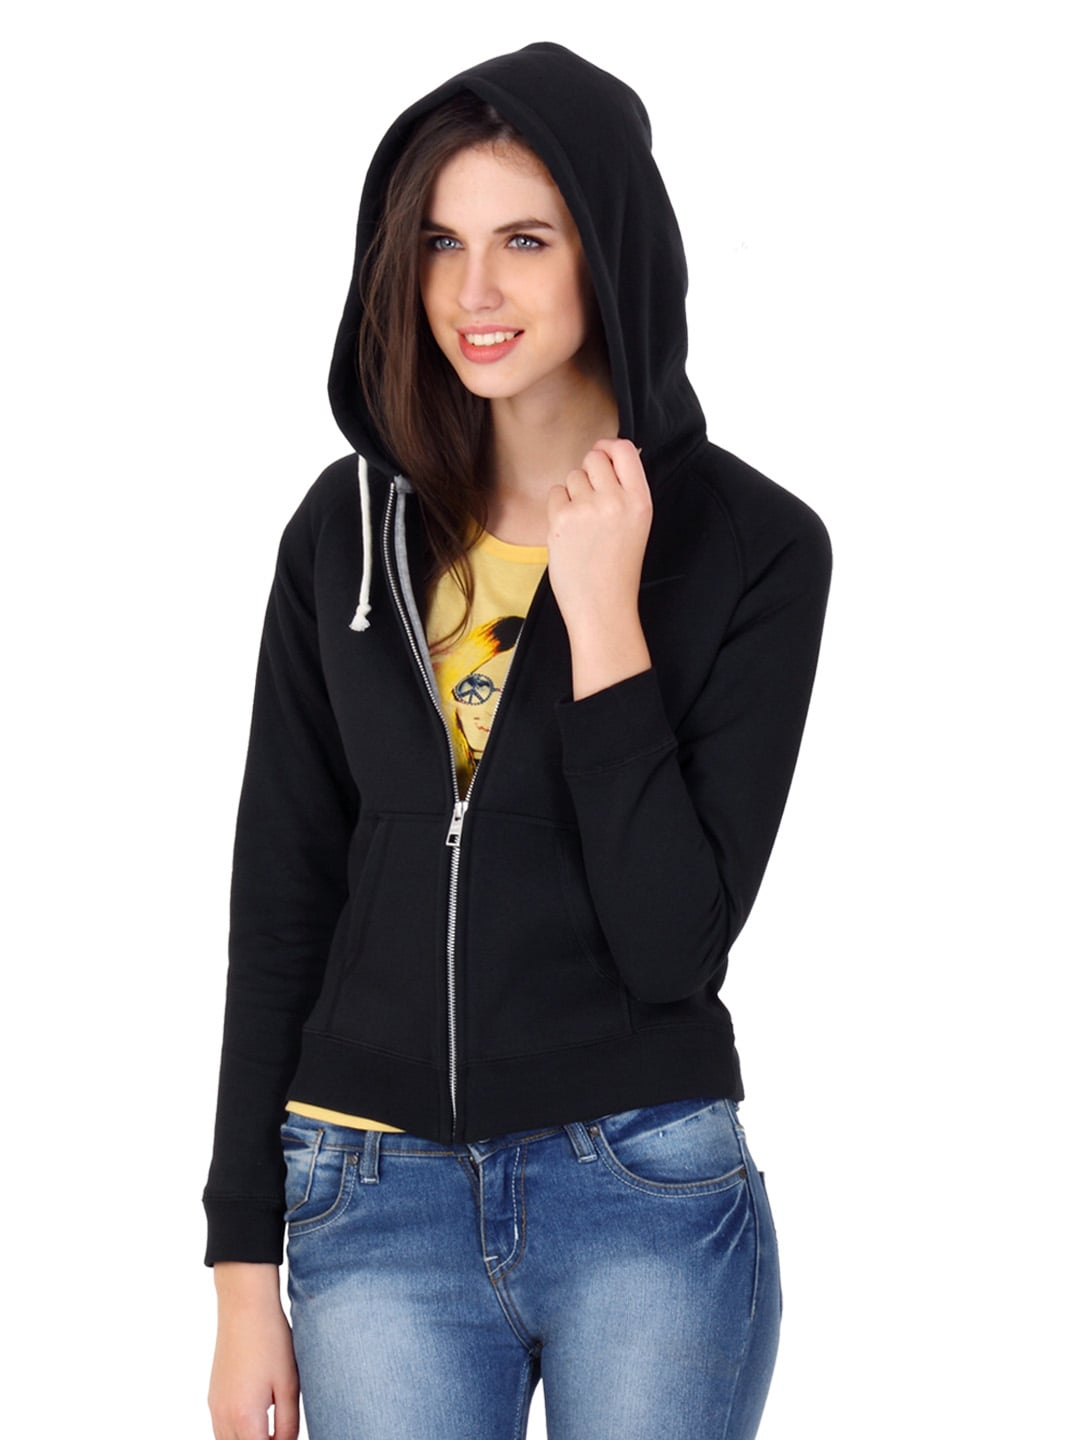 Good Watch Brands For Men >> Buy Nike Women Black Hooded Sweatshirt - 290 - Apparel for ...